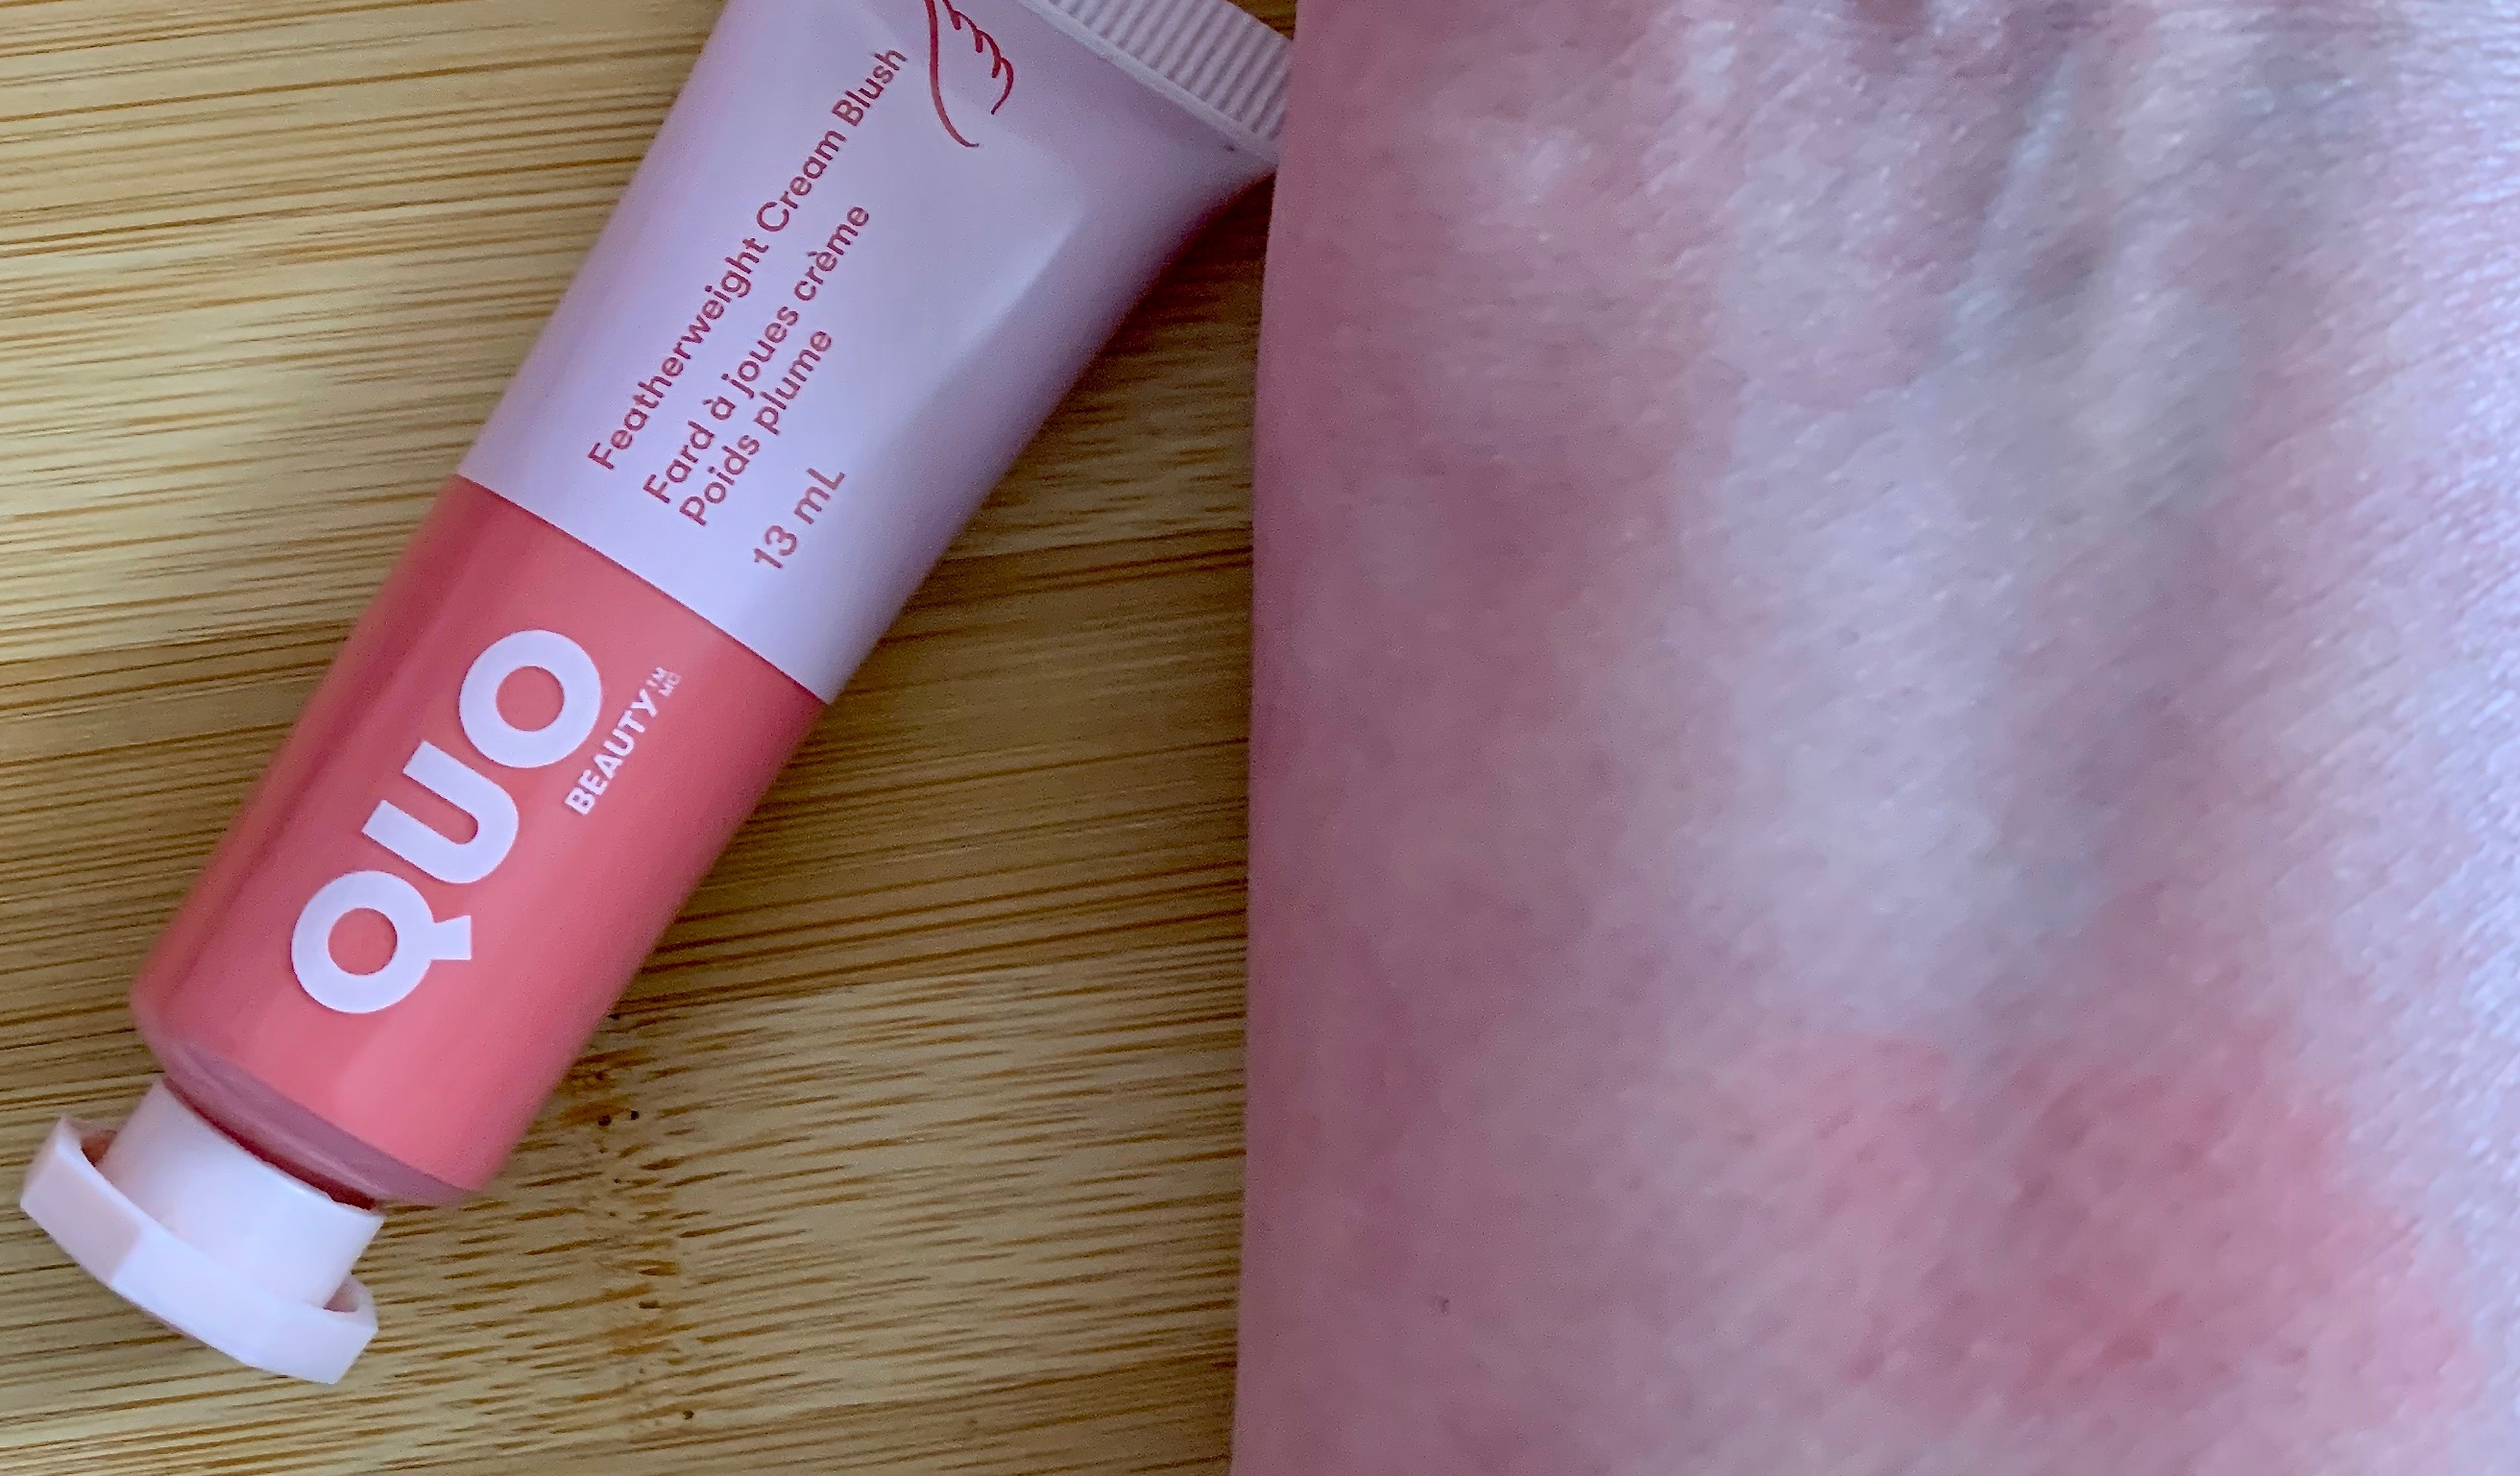 Quo Beauty Featherweight Cream Blush